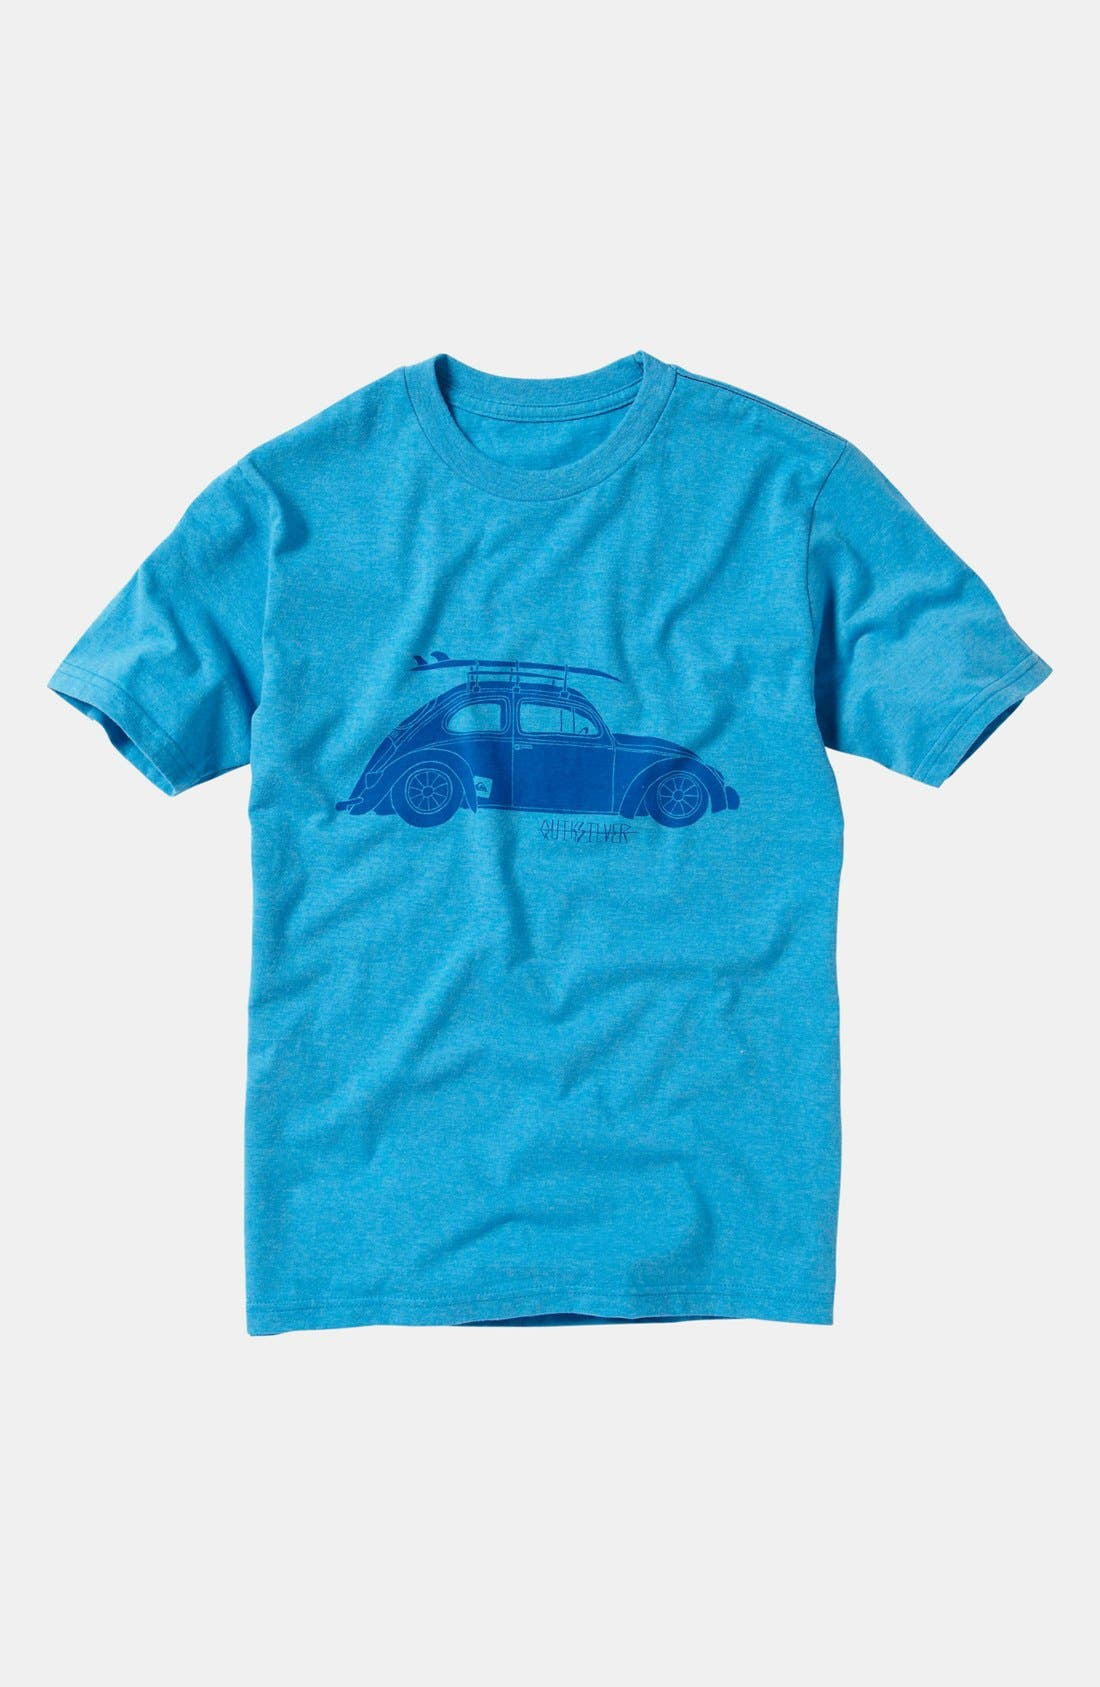 Alternate Image 1 Selected - Quiksilver 'Bugged Out' T-Shirt (Little Boys)